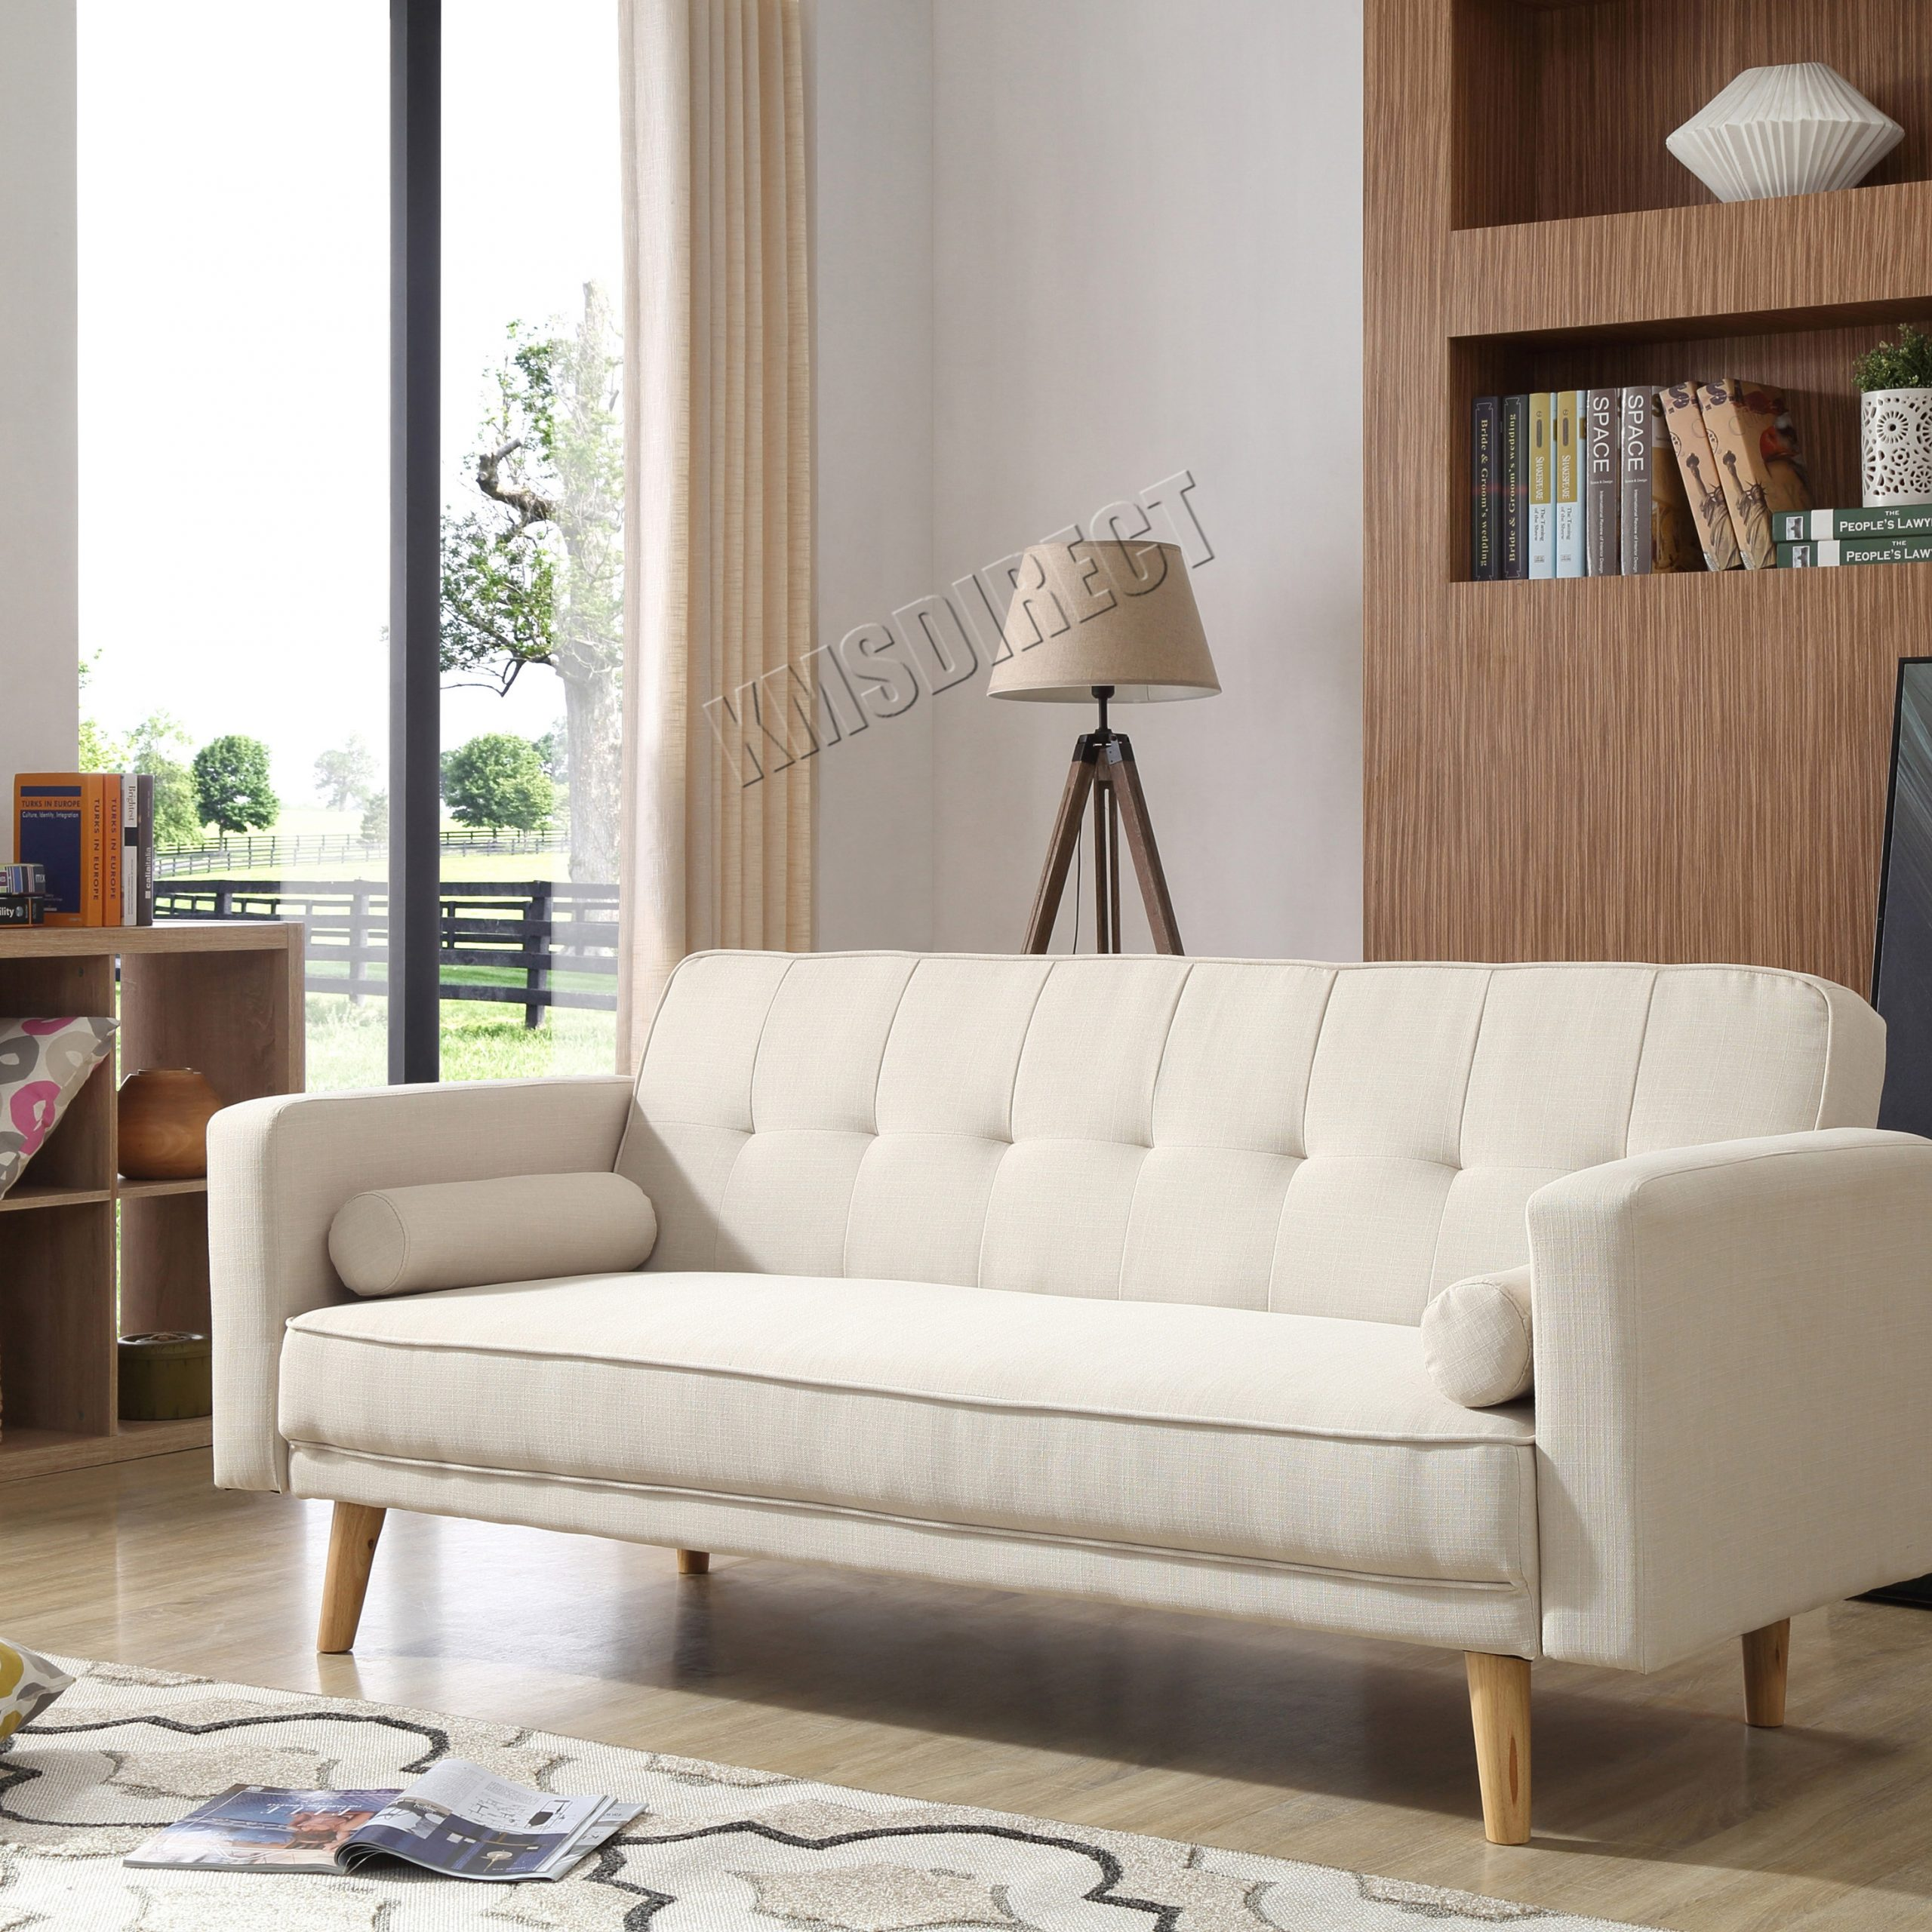 Westwood Fabric Sofa Bed 3 Seater Couch Luxury Modern Home With Regard To Fancy Sofas (View 12 of 15)